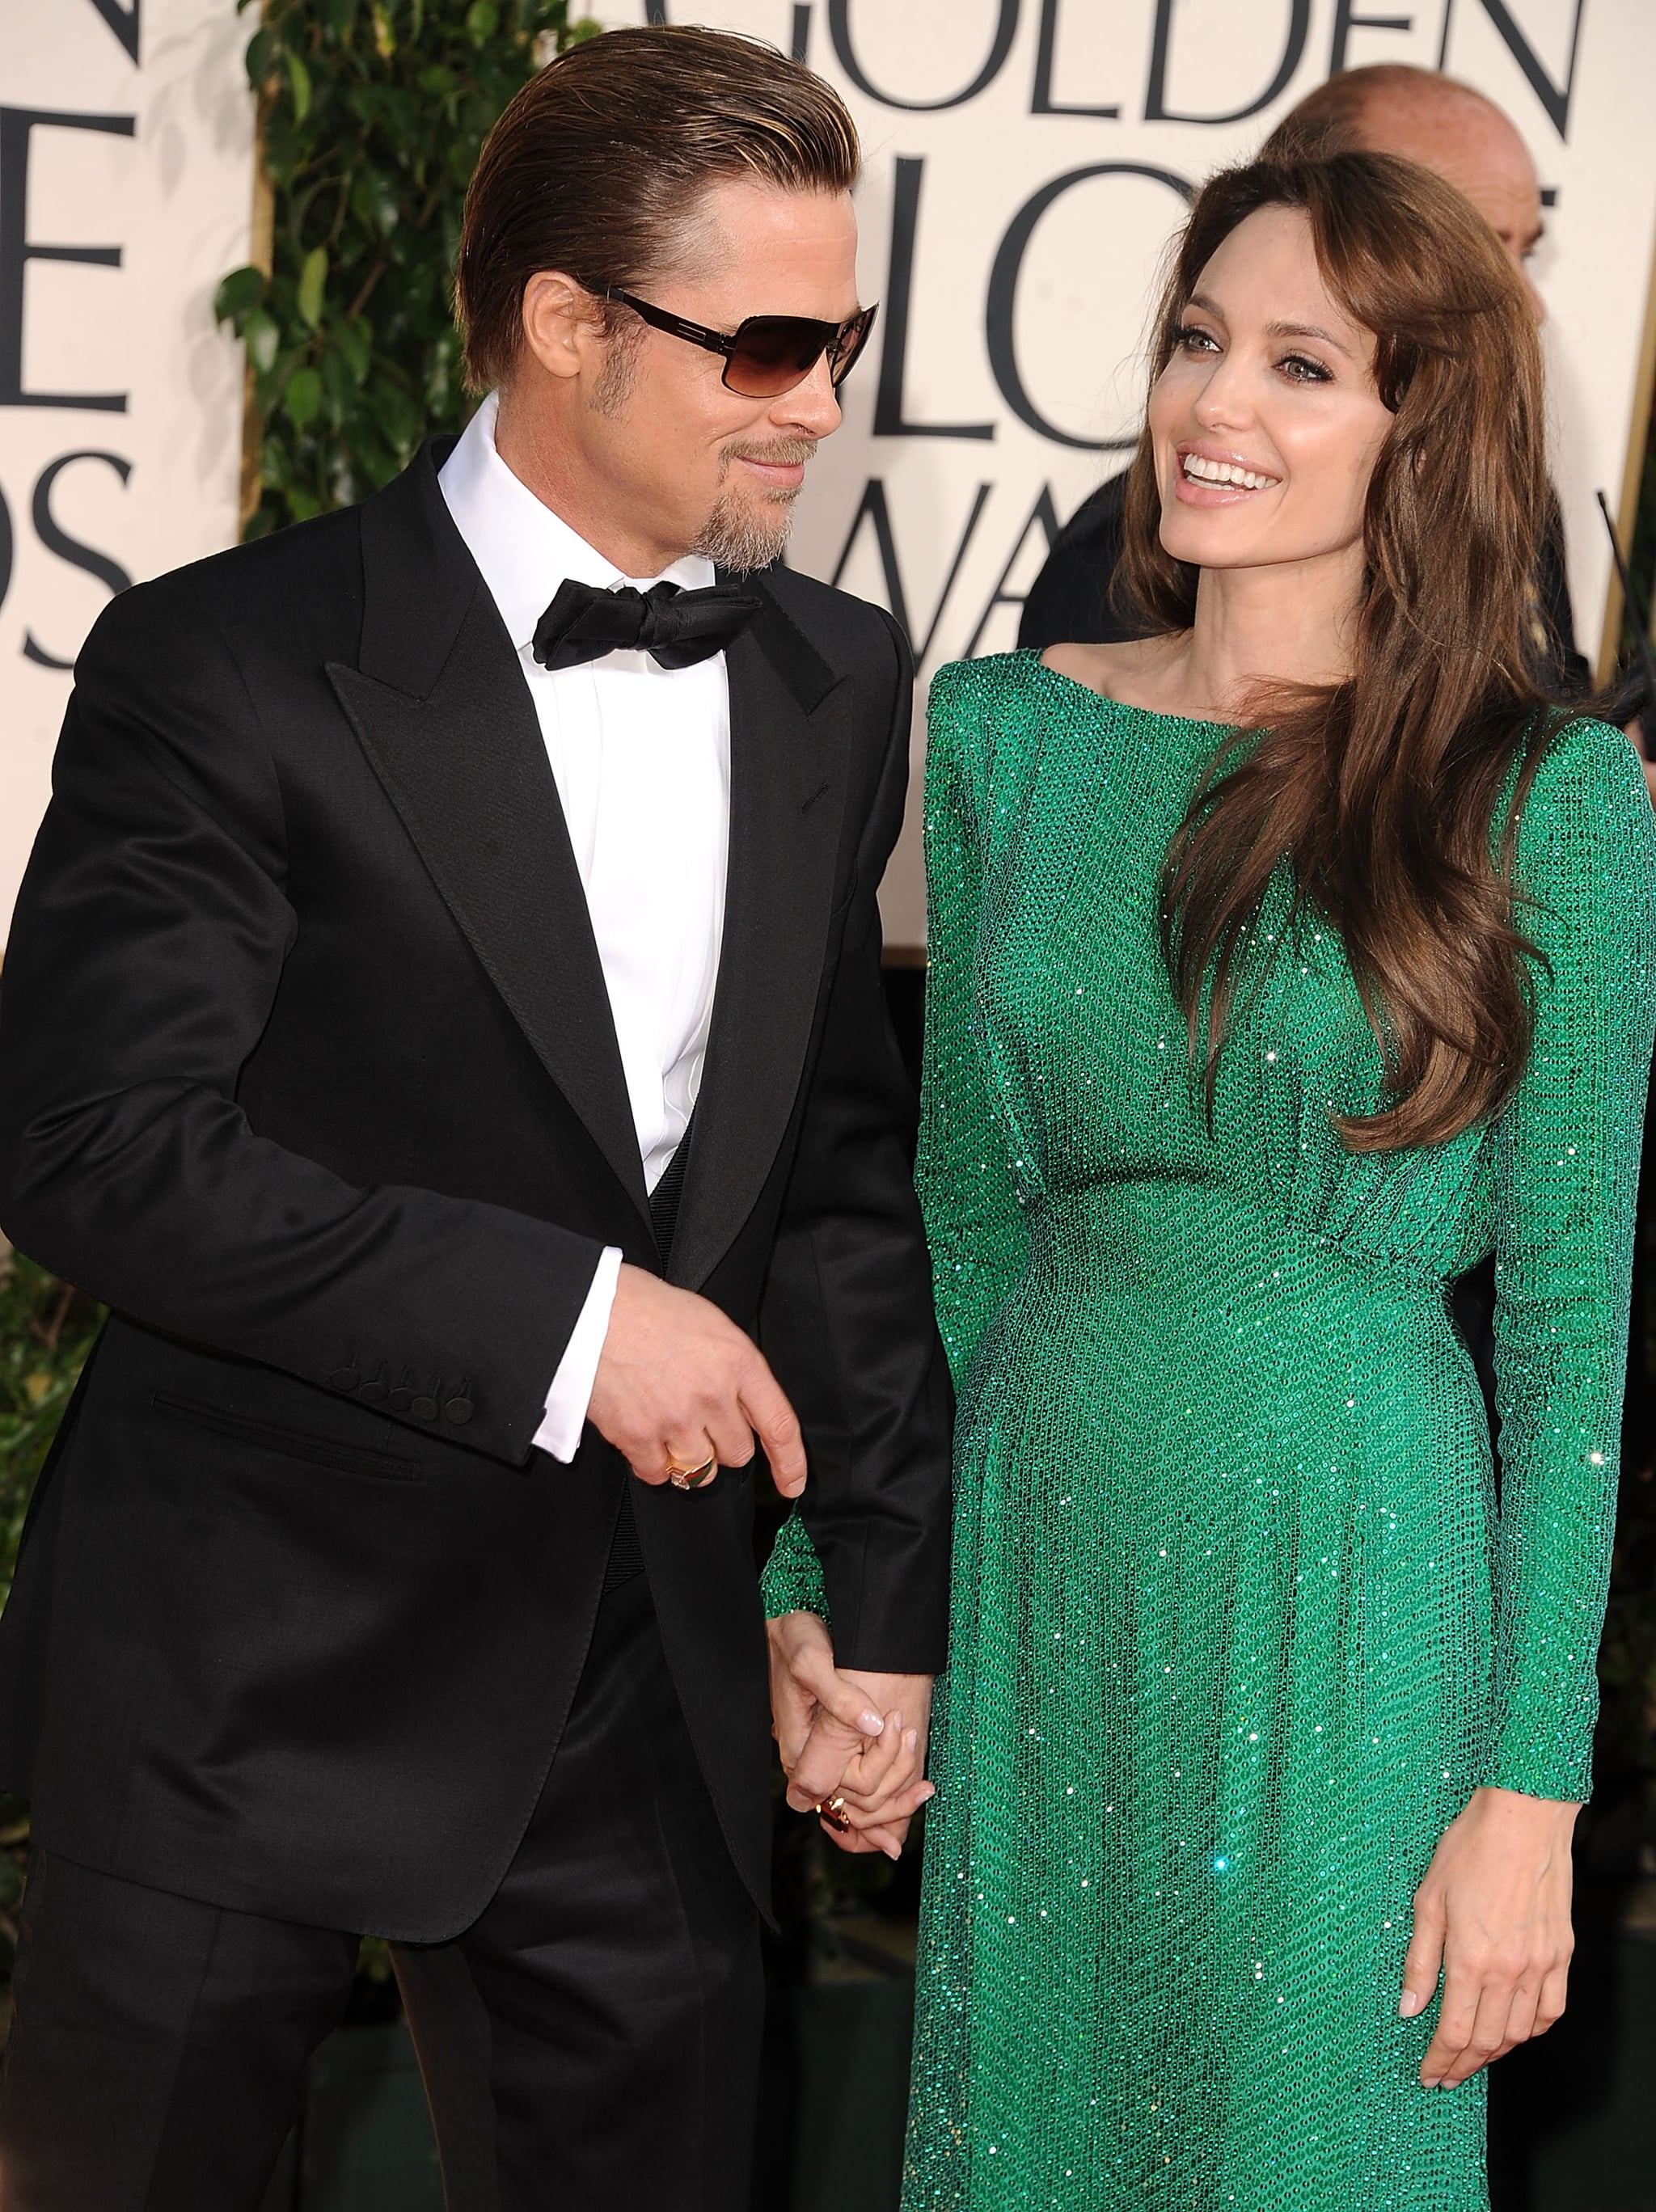 Fans went wild when Brad Pitt and Angelina Jolie stepped onto the red carpet at the January 2011 Golden Globes.